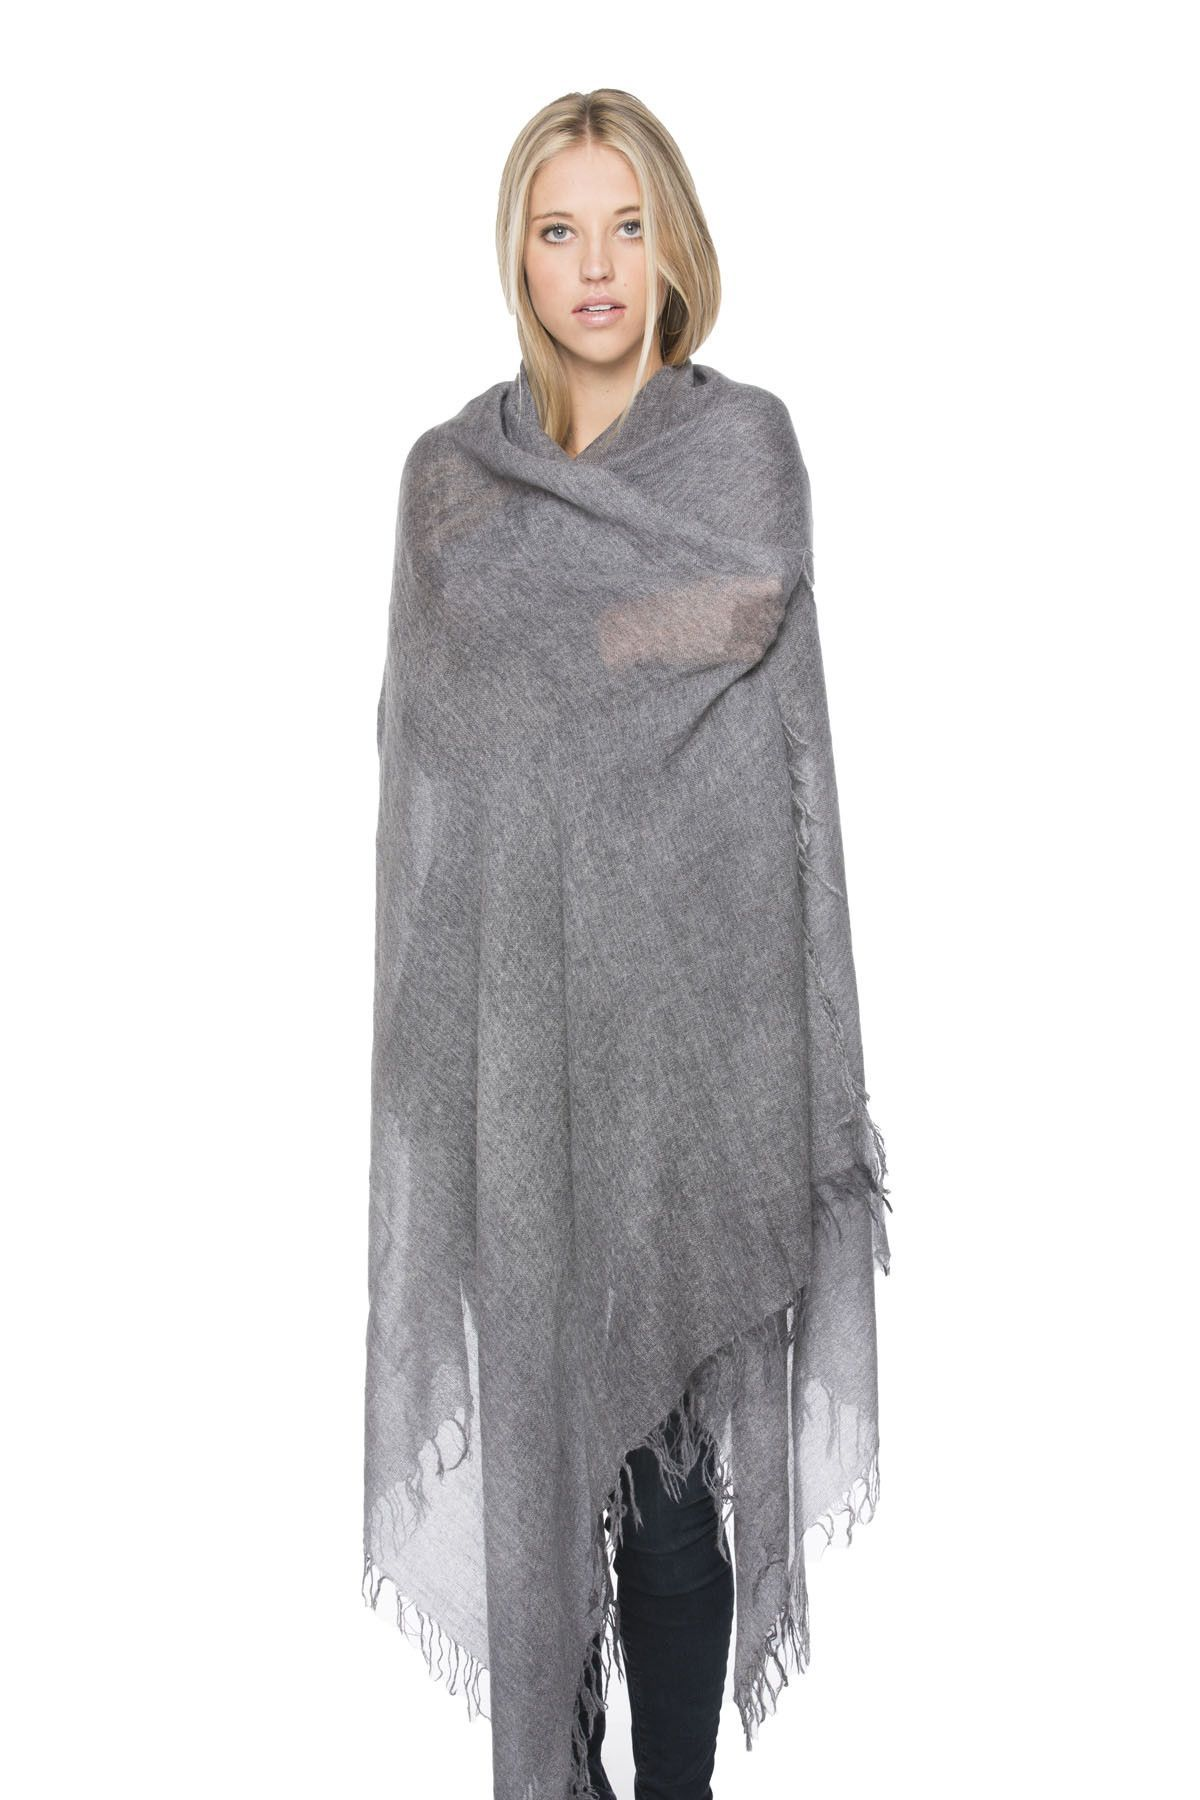 100% Cashmere Luxury Scarf, New York Parkway print in Charcoal